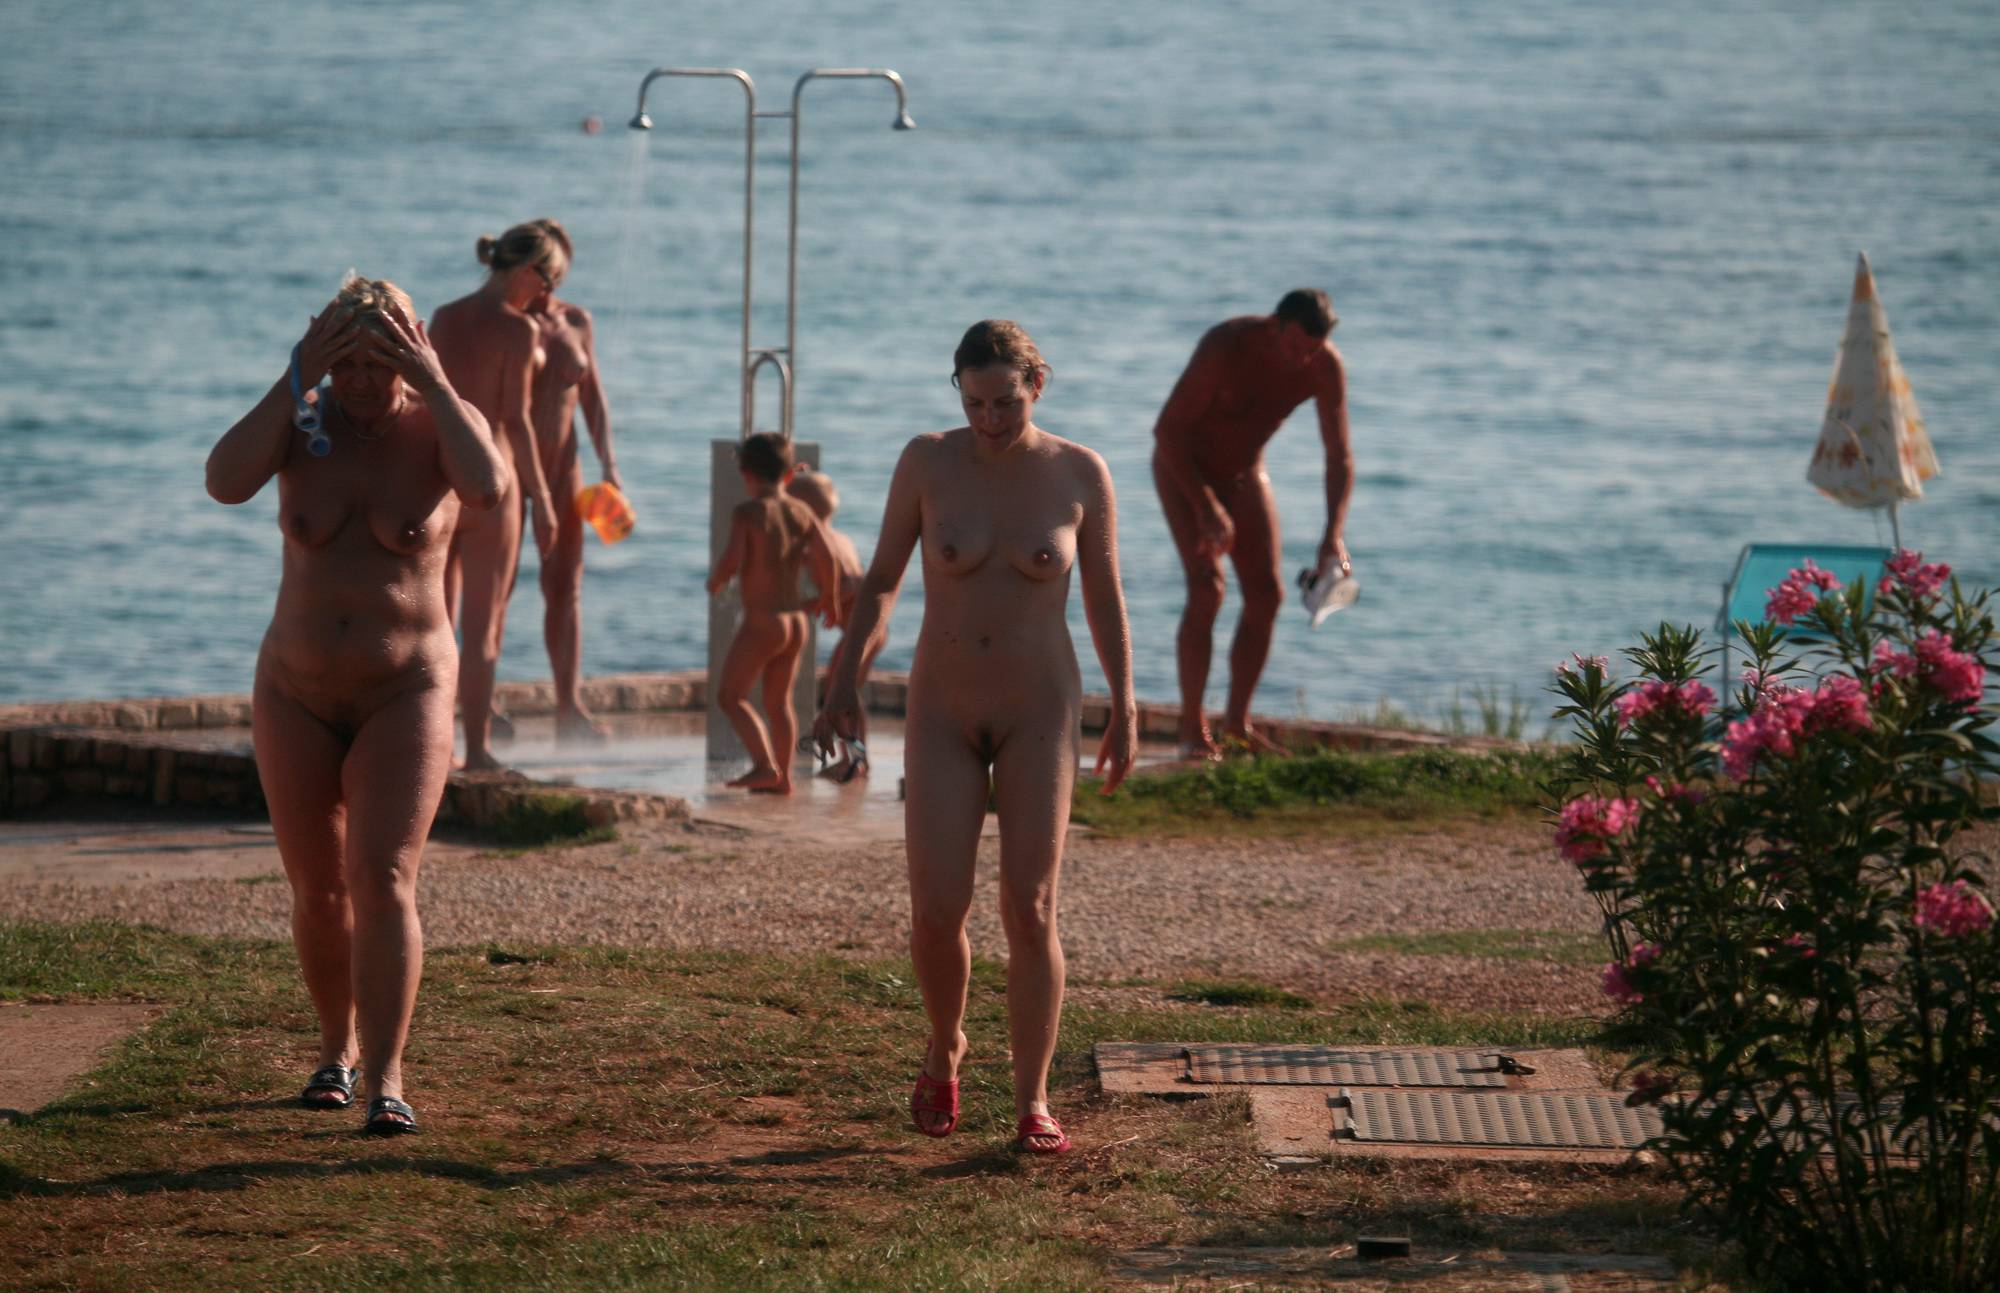 Pure Nudism Images Naturist Shower Series - 1